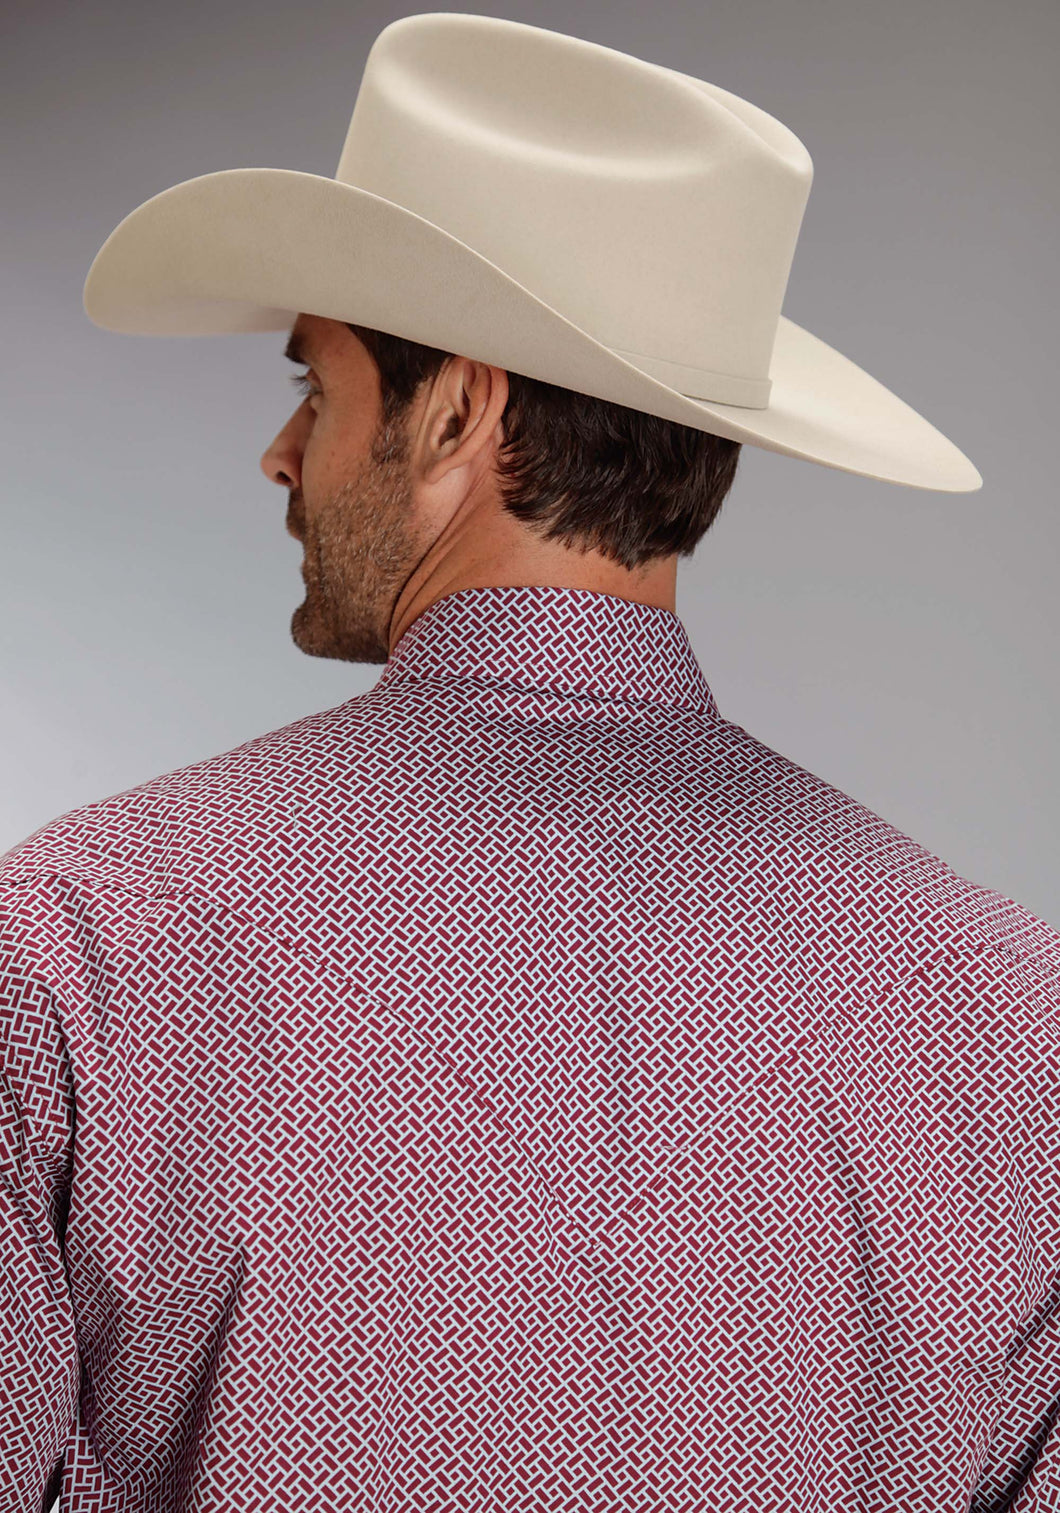 Stetson Men's Collection- Spring I Stetson Mens Long Sleeve Shirt 0827 Cornerstone Print